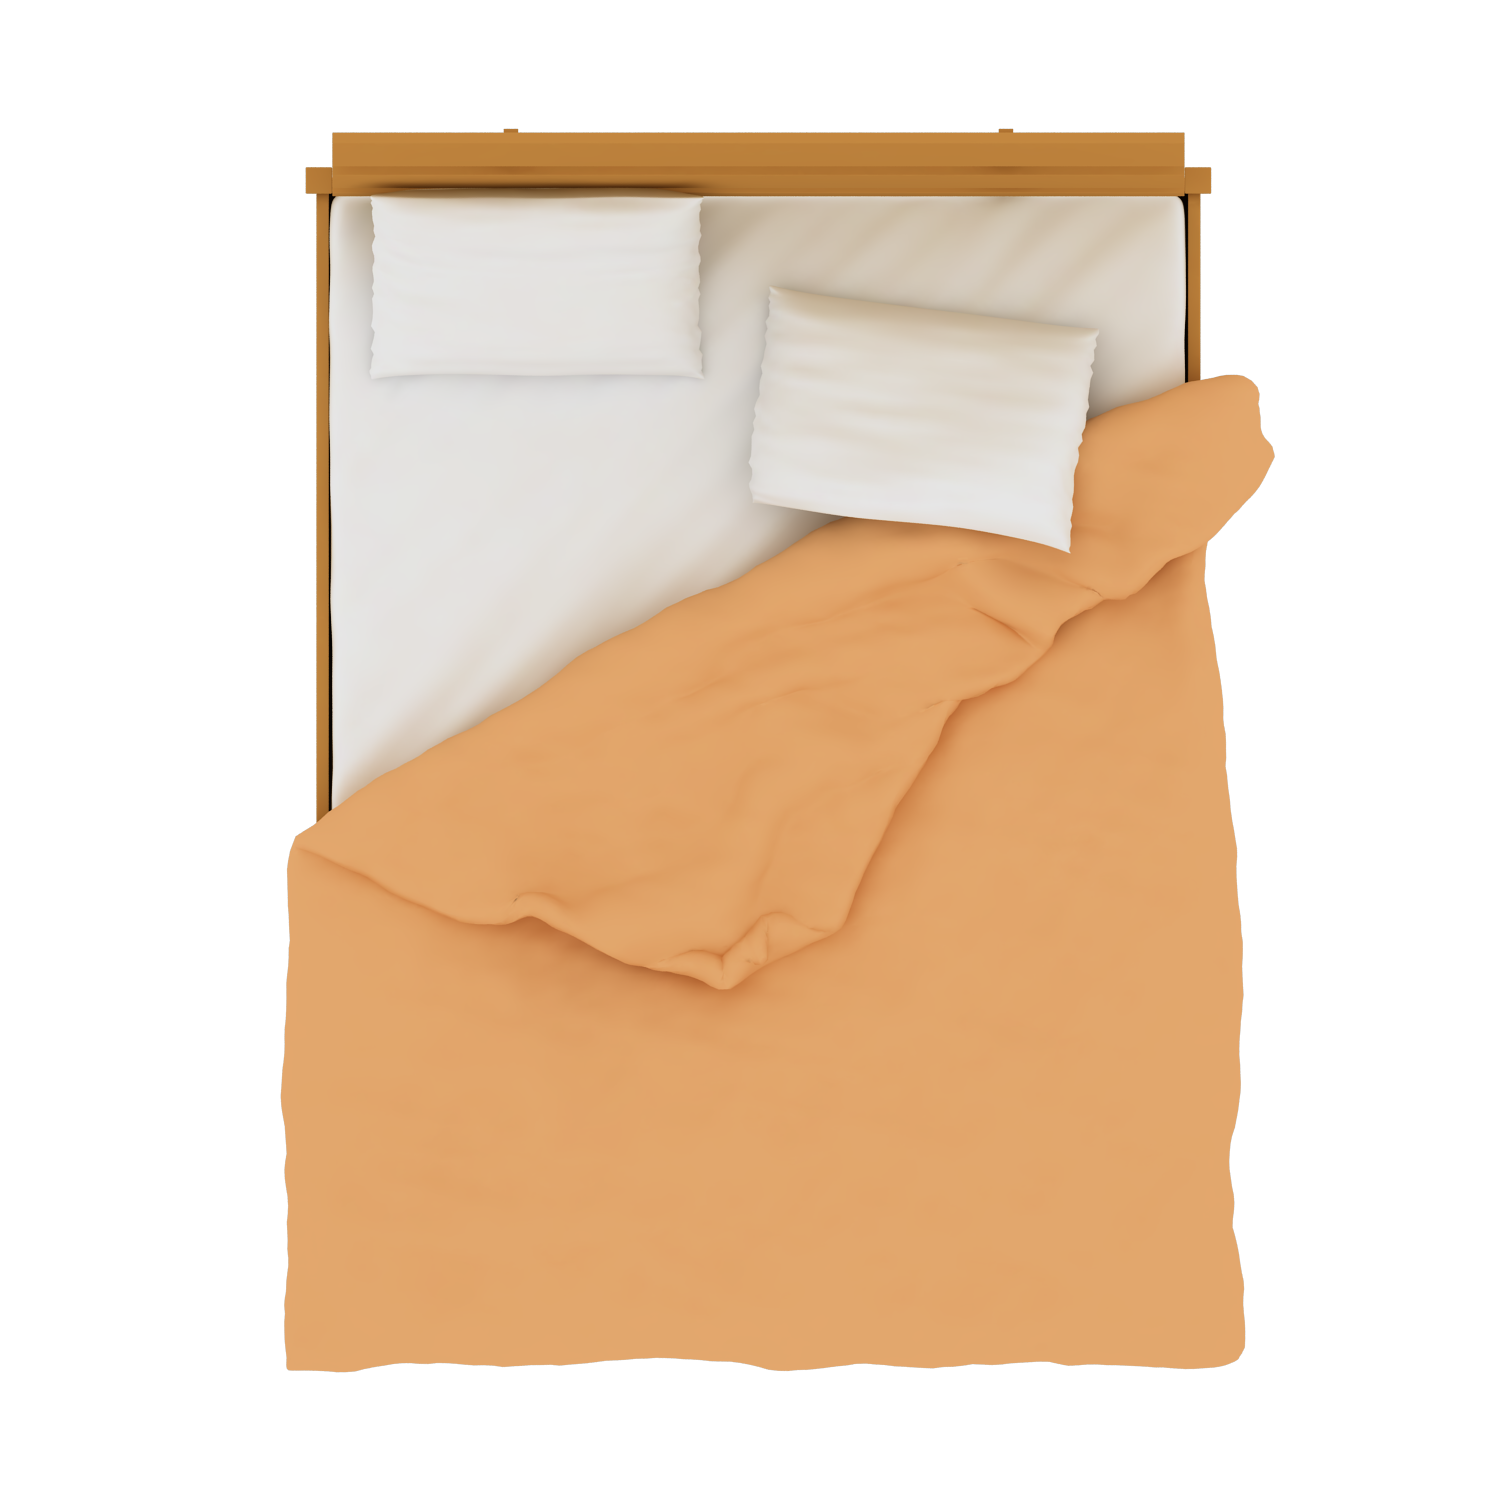 Clipart bed bedding. Http www aidigit com